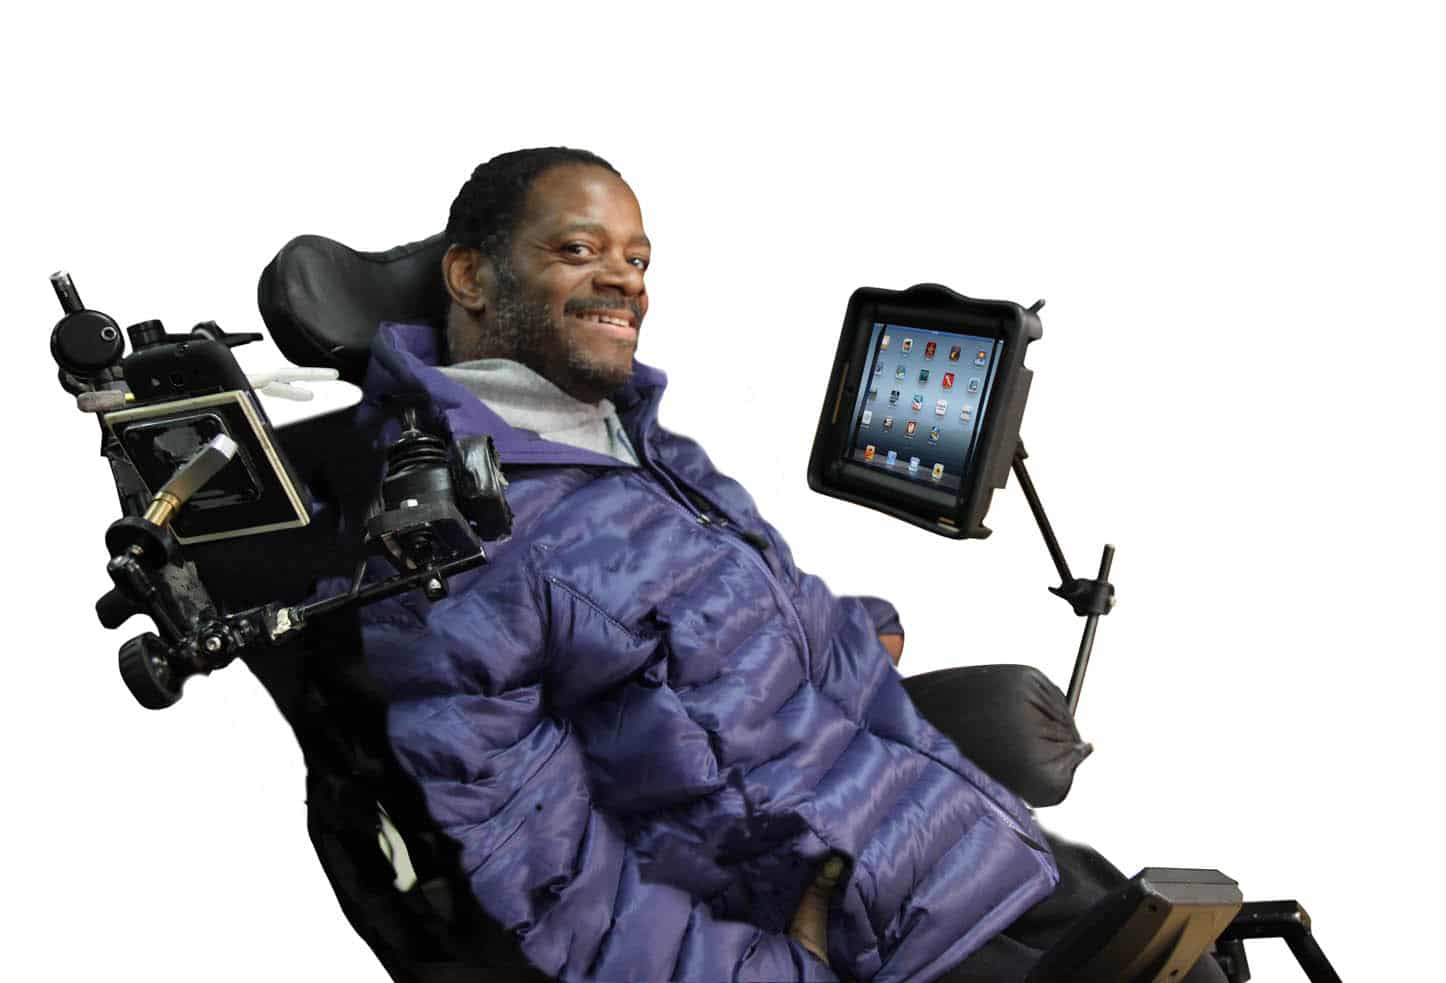 Photo of man in wheelchair with iPad assistive devices